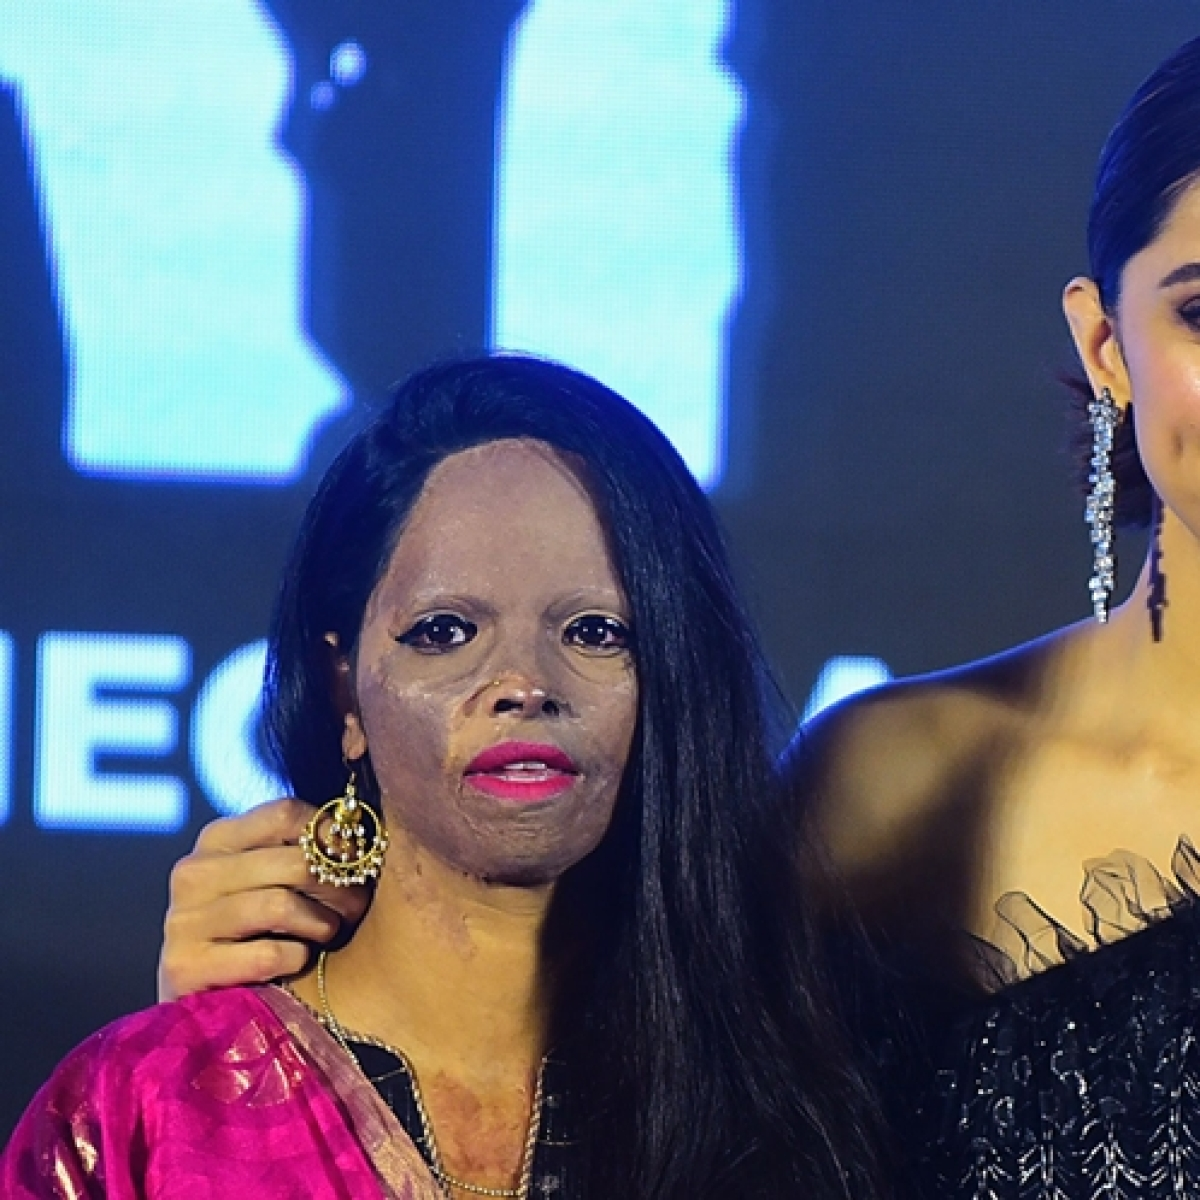 'She vetted your script pro bono': SC lawyer asks 'Chhapaak' makers to accredit Laxmi Agarwal's advocate